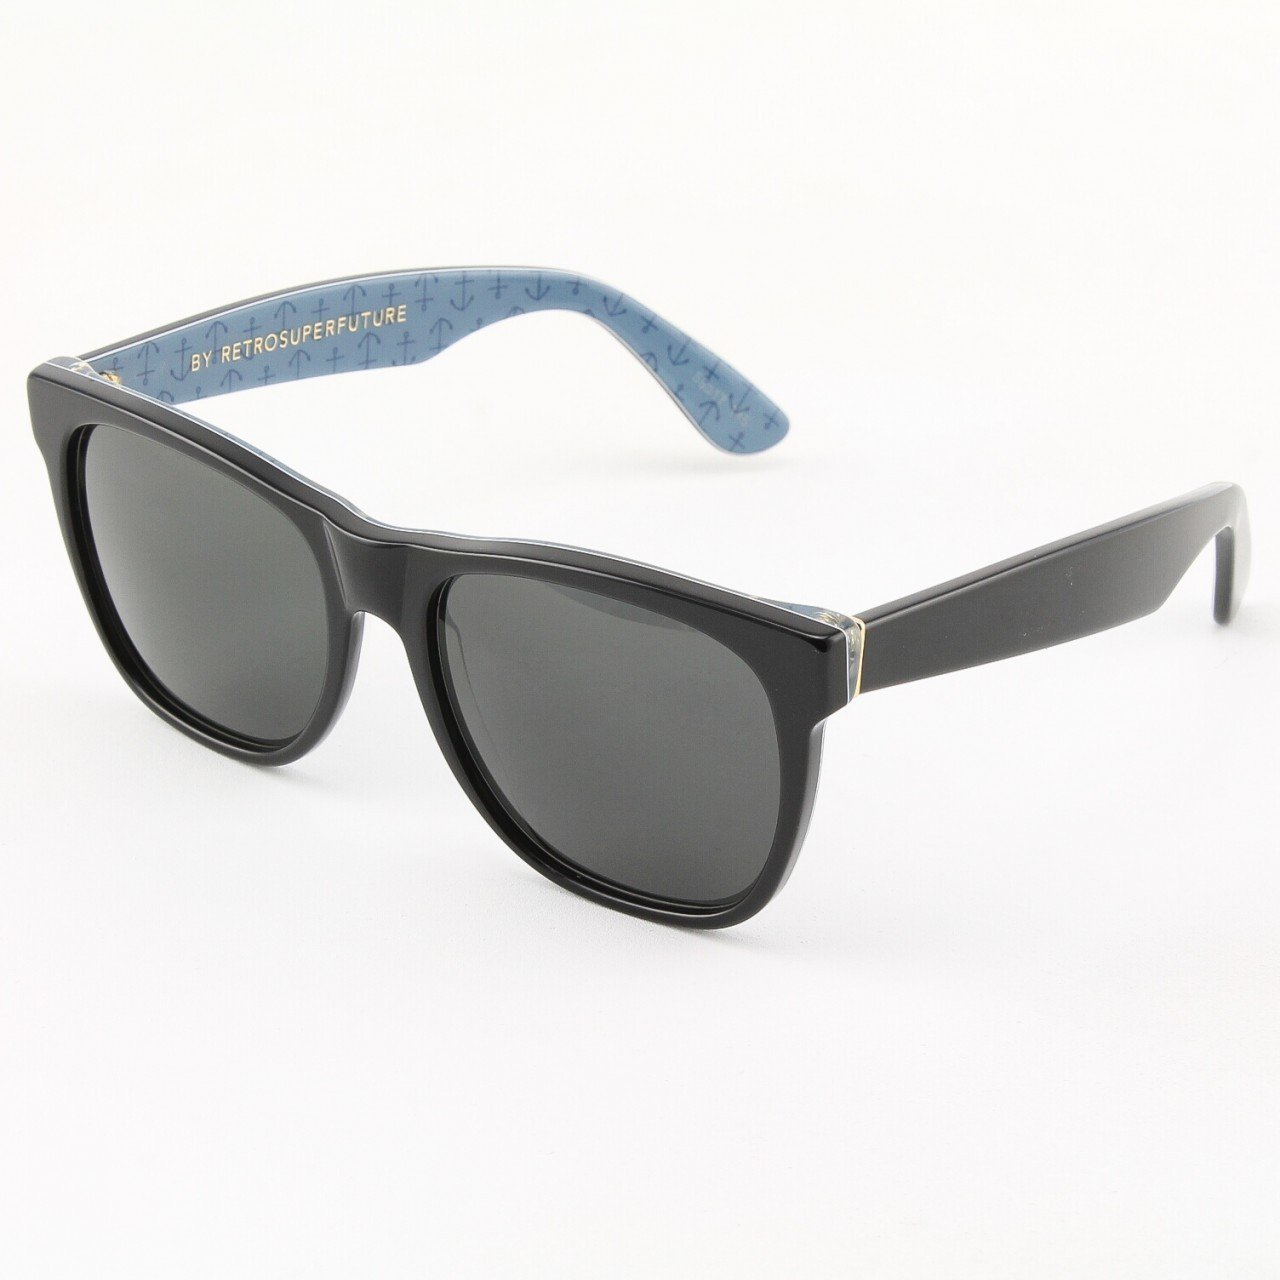 Super Classic 512/3T Sunglasses Black and Blue with Blue Zeiss Lenses by RETROSUPERFUTURE